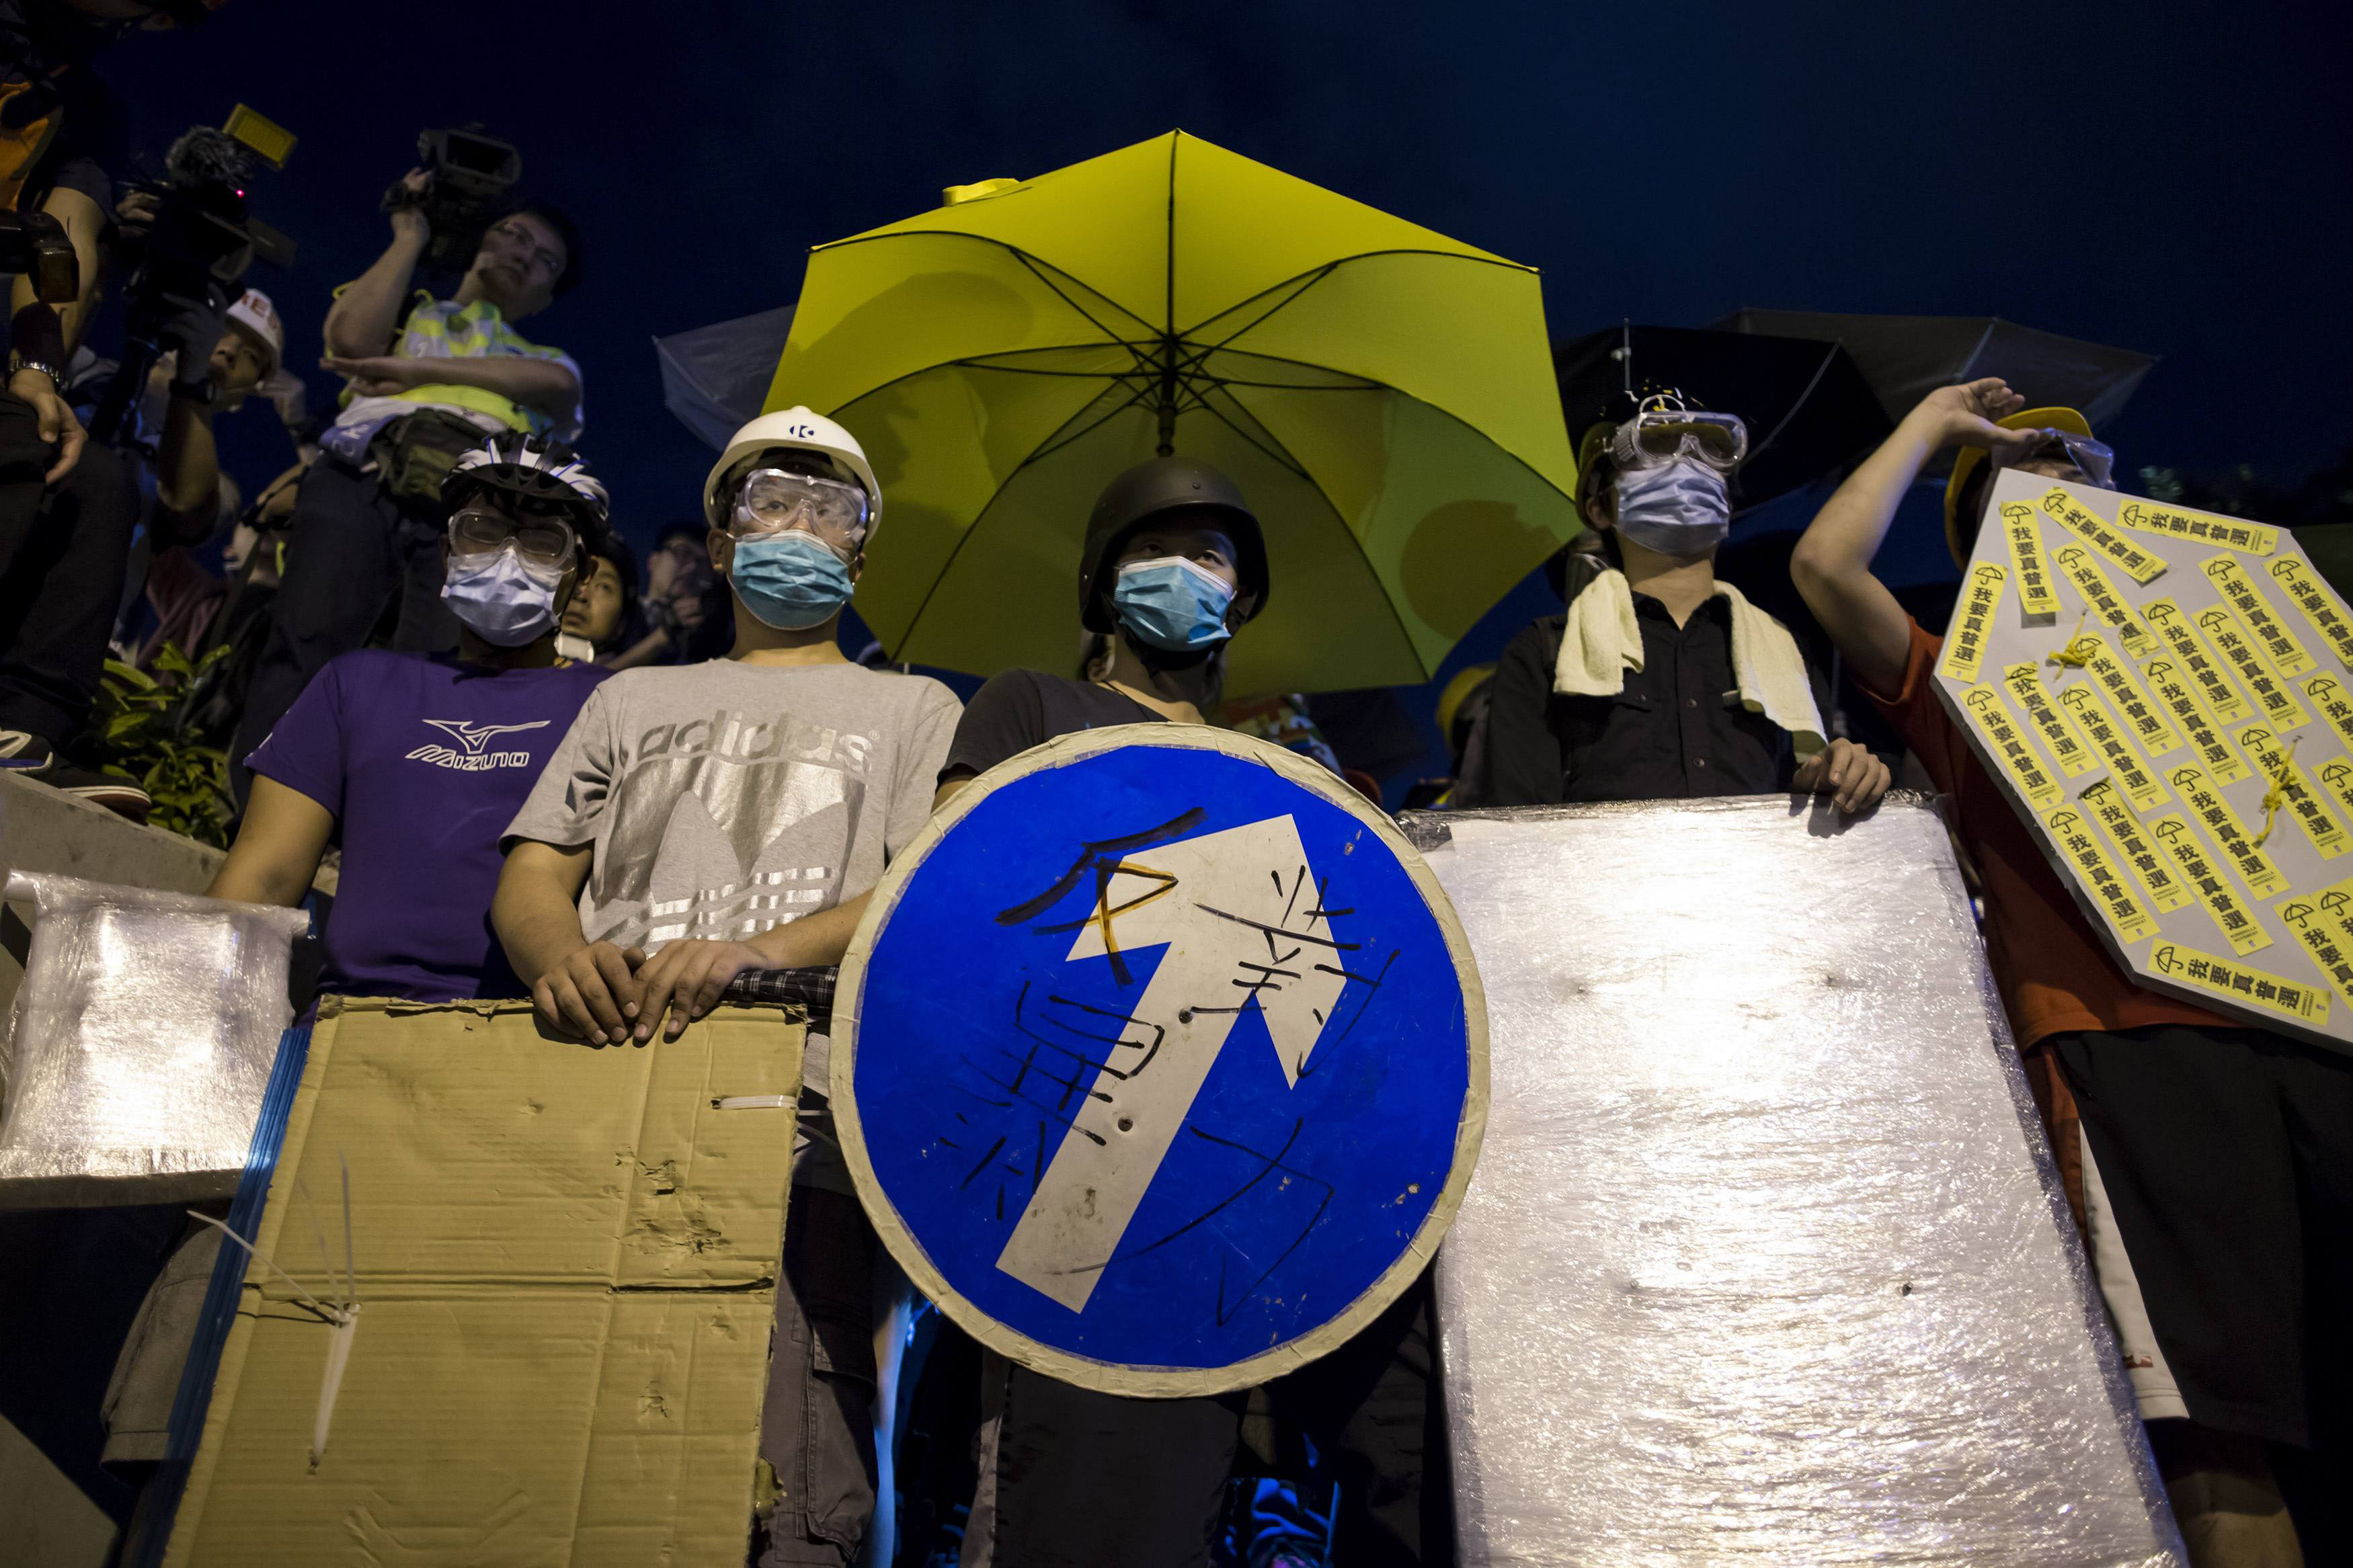 A pro-democracy protester holds a road sign as a shield while standing in front of riot police close to the chief executive's office in Hong Kong on Nov. 30.